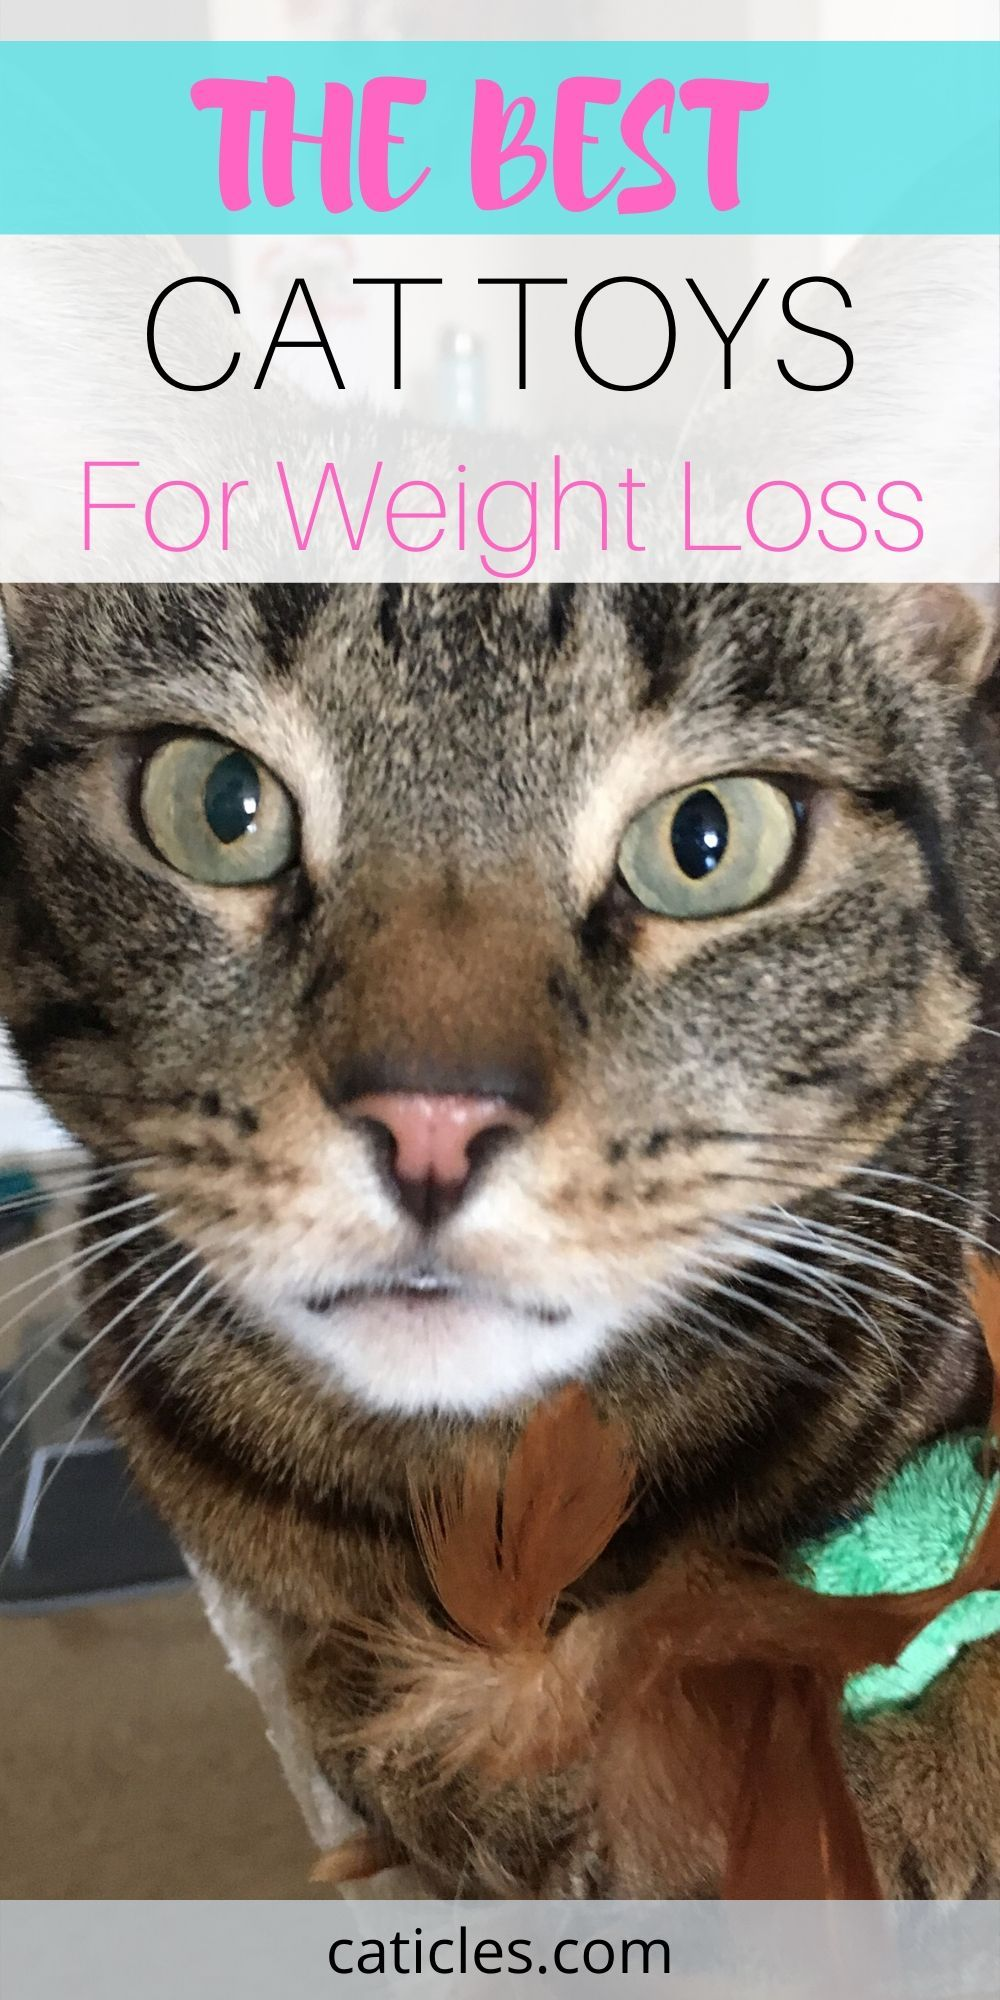 b82aa67544b56c9ad0b3353ecb0e0b37 - How To Get My House Cat To Lose Weight